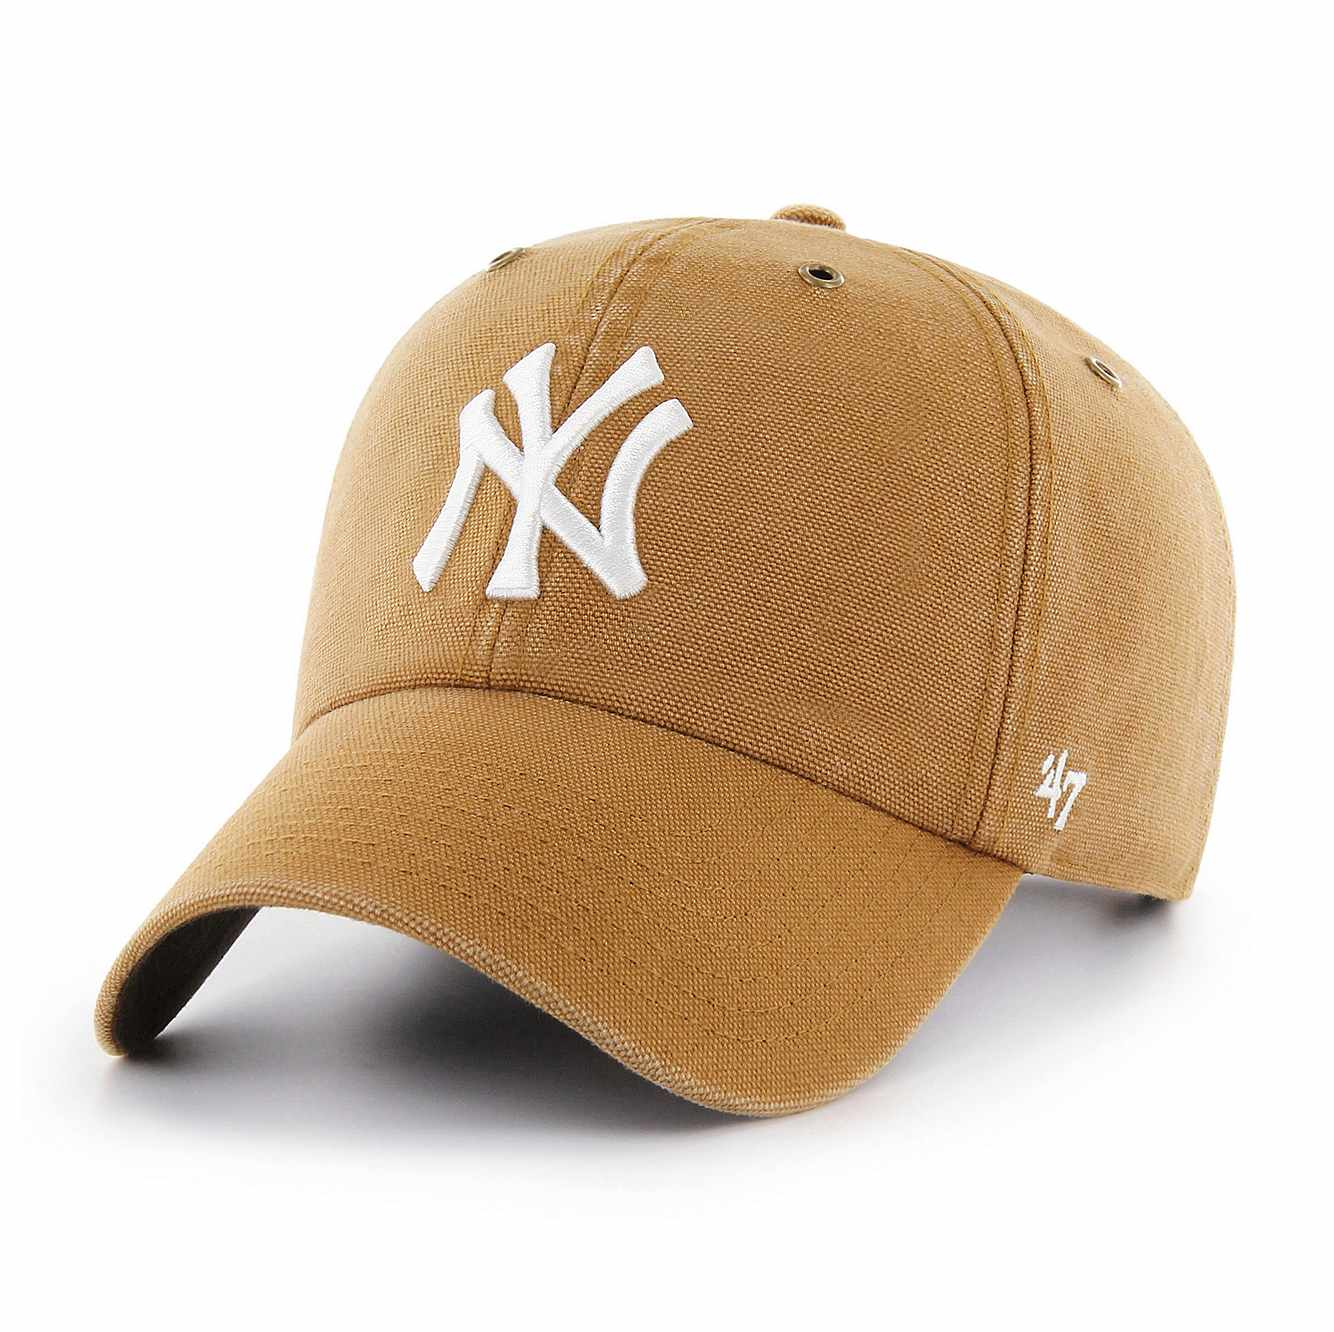 bbfca9a1 New York Yankees Carhartt x '47 Clean Up